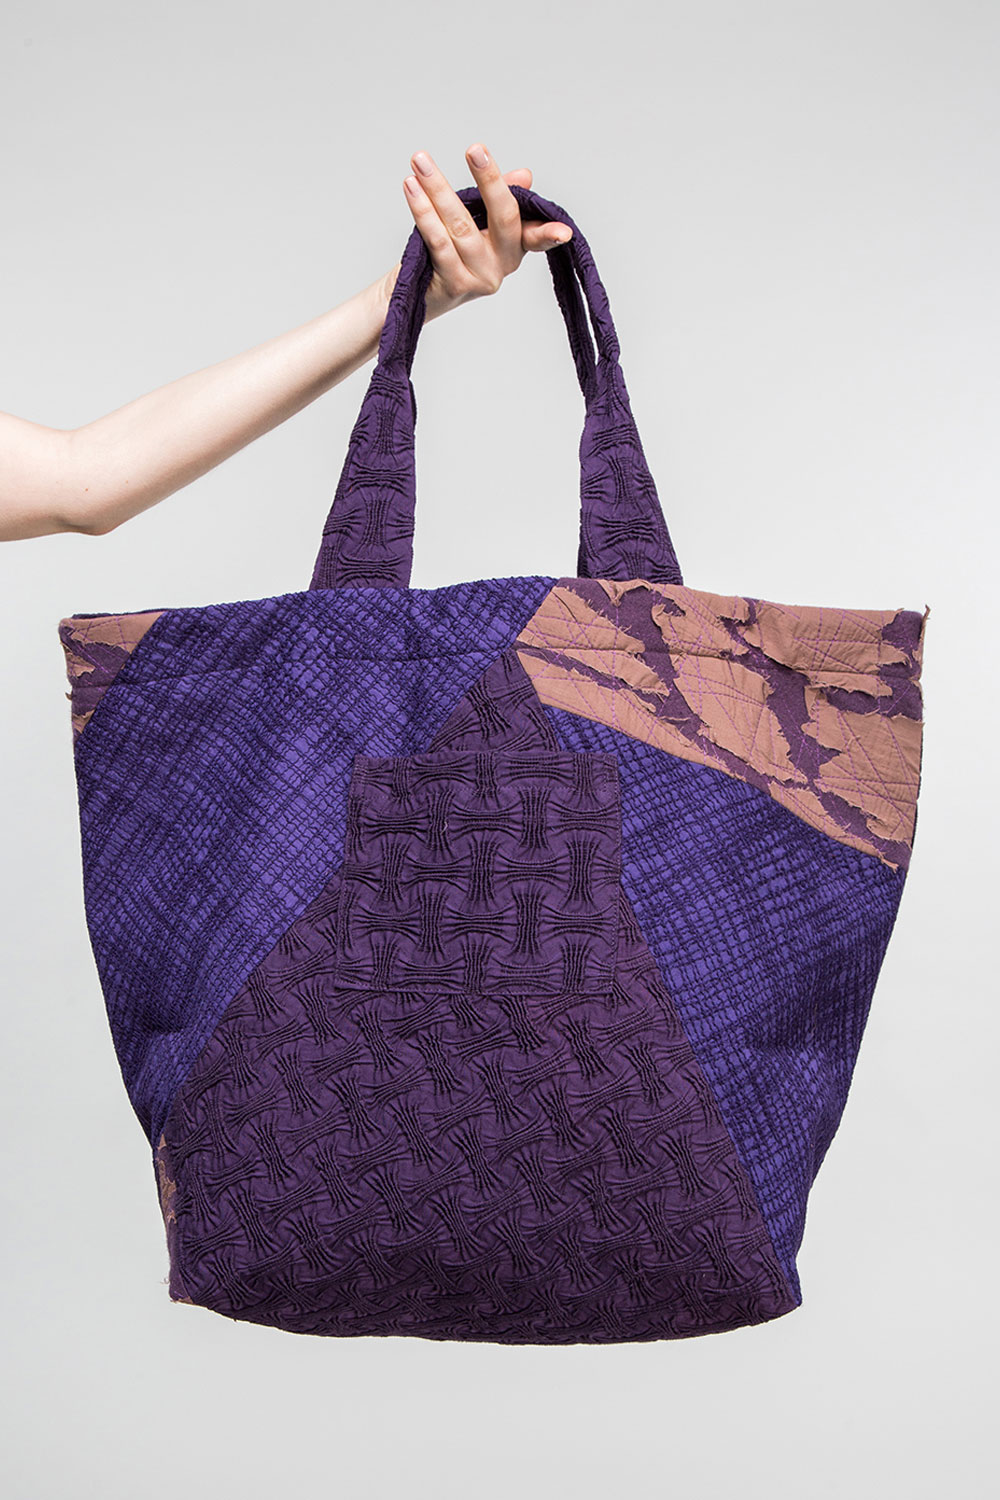 Big Bag in in a Patchwork of Nuno Purple/Tan Textiles  $495